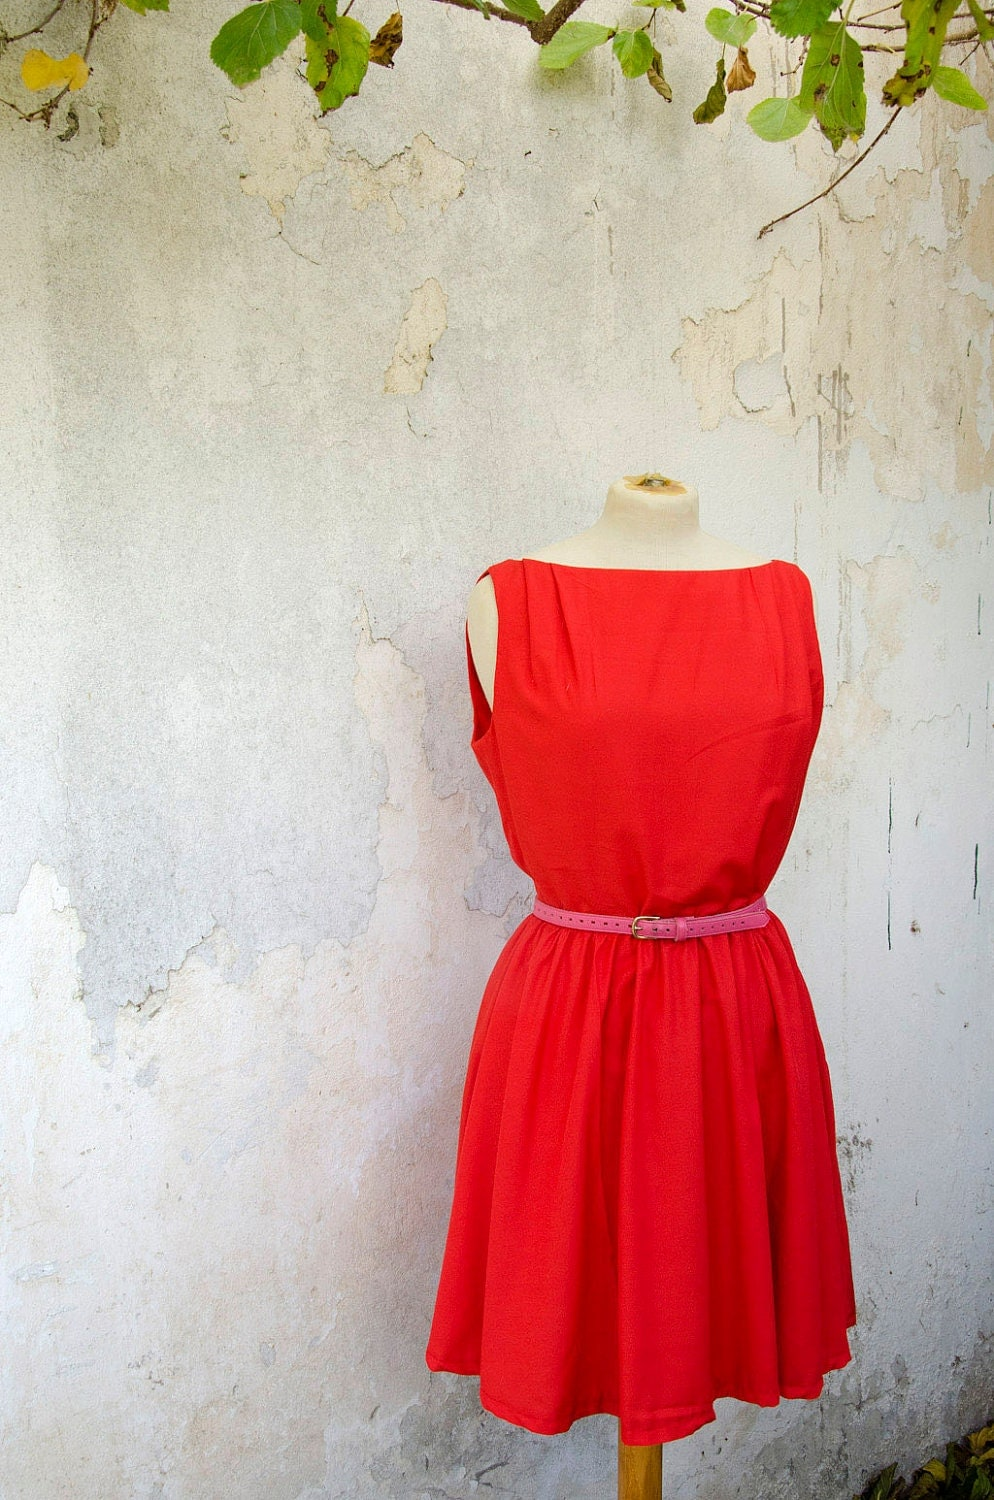 Red Orange Vintage Inspired Dress